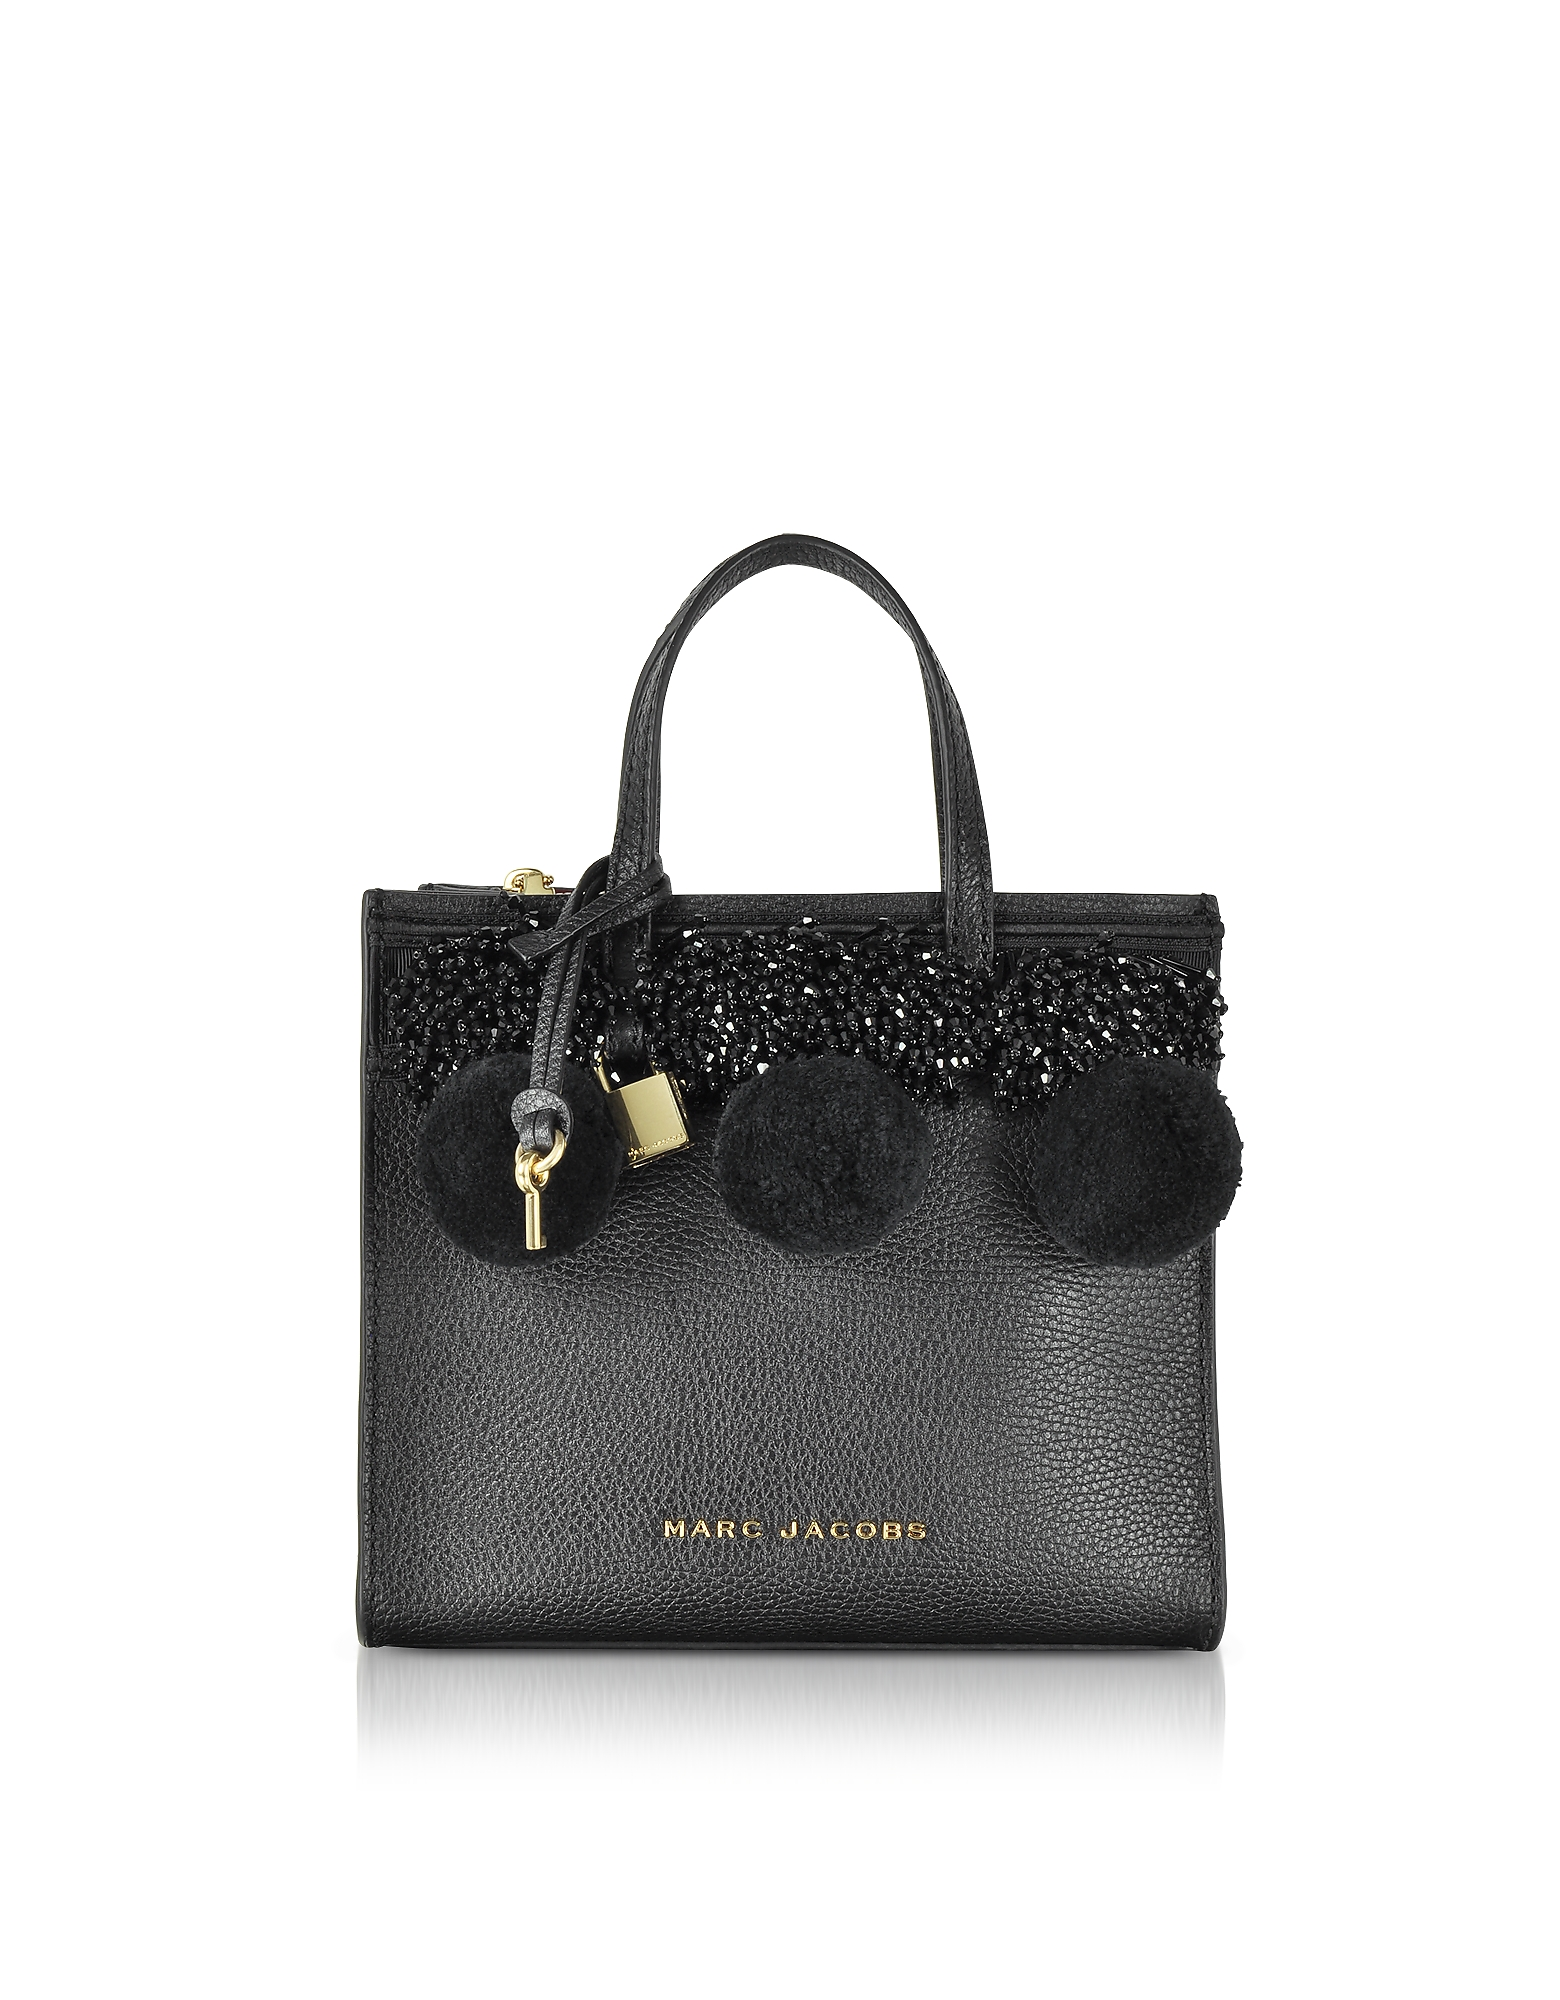 Marc Jacobs Handbags, The Grind Mini Beads & PomPoms Black Leather Tote Bag